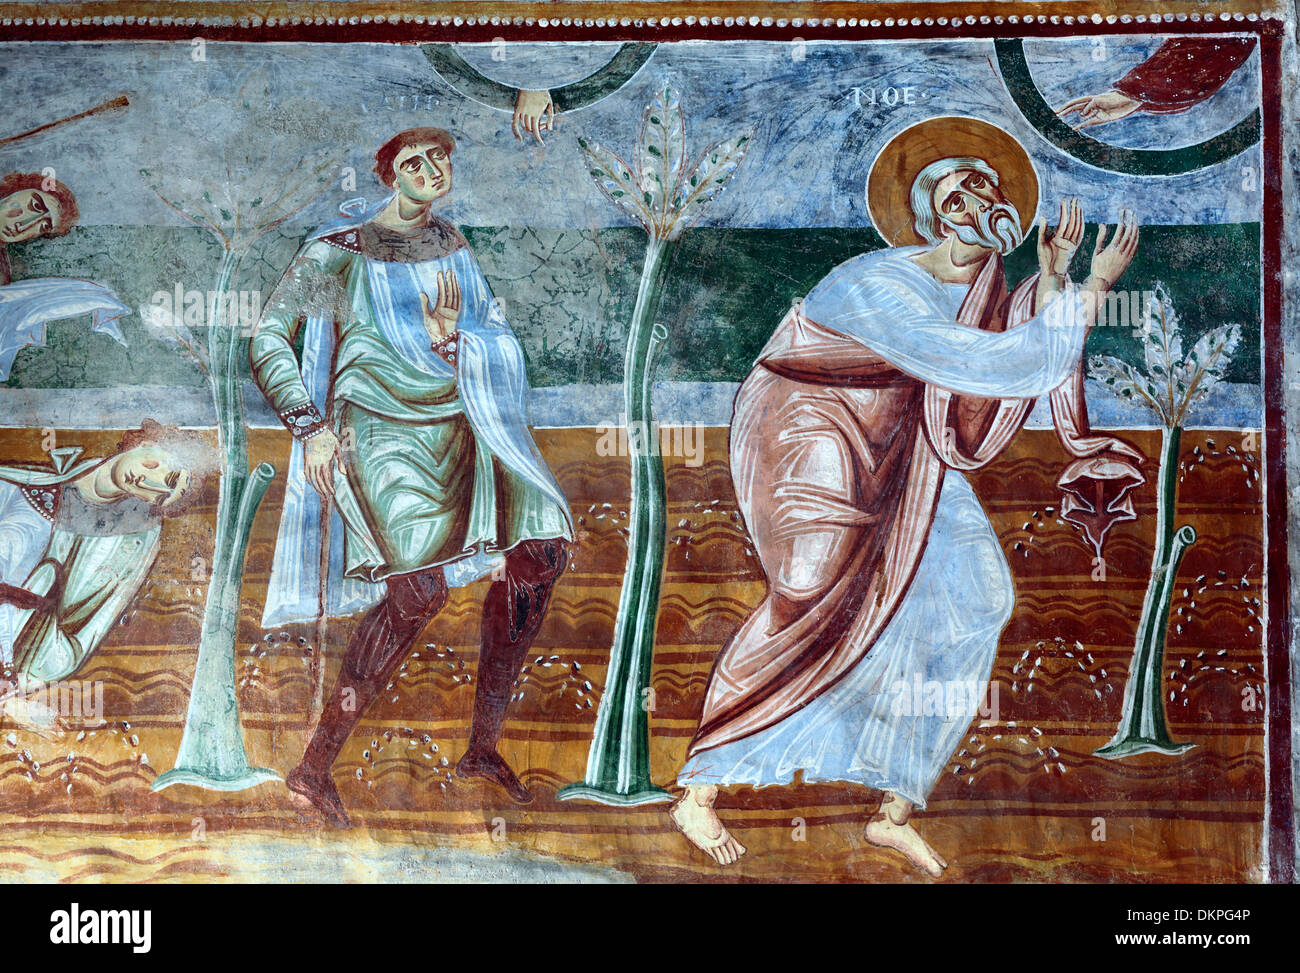 Mural painting, abbey church, Sant Angelo in Formis, Campania, Italy Stock Photo